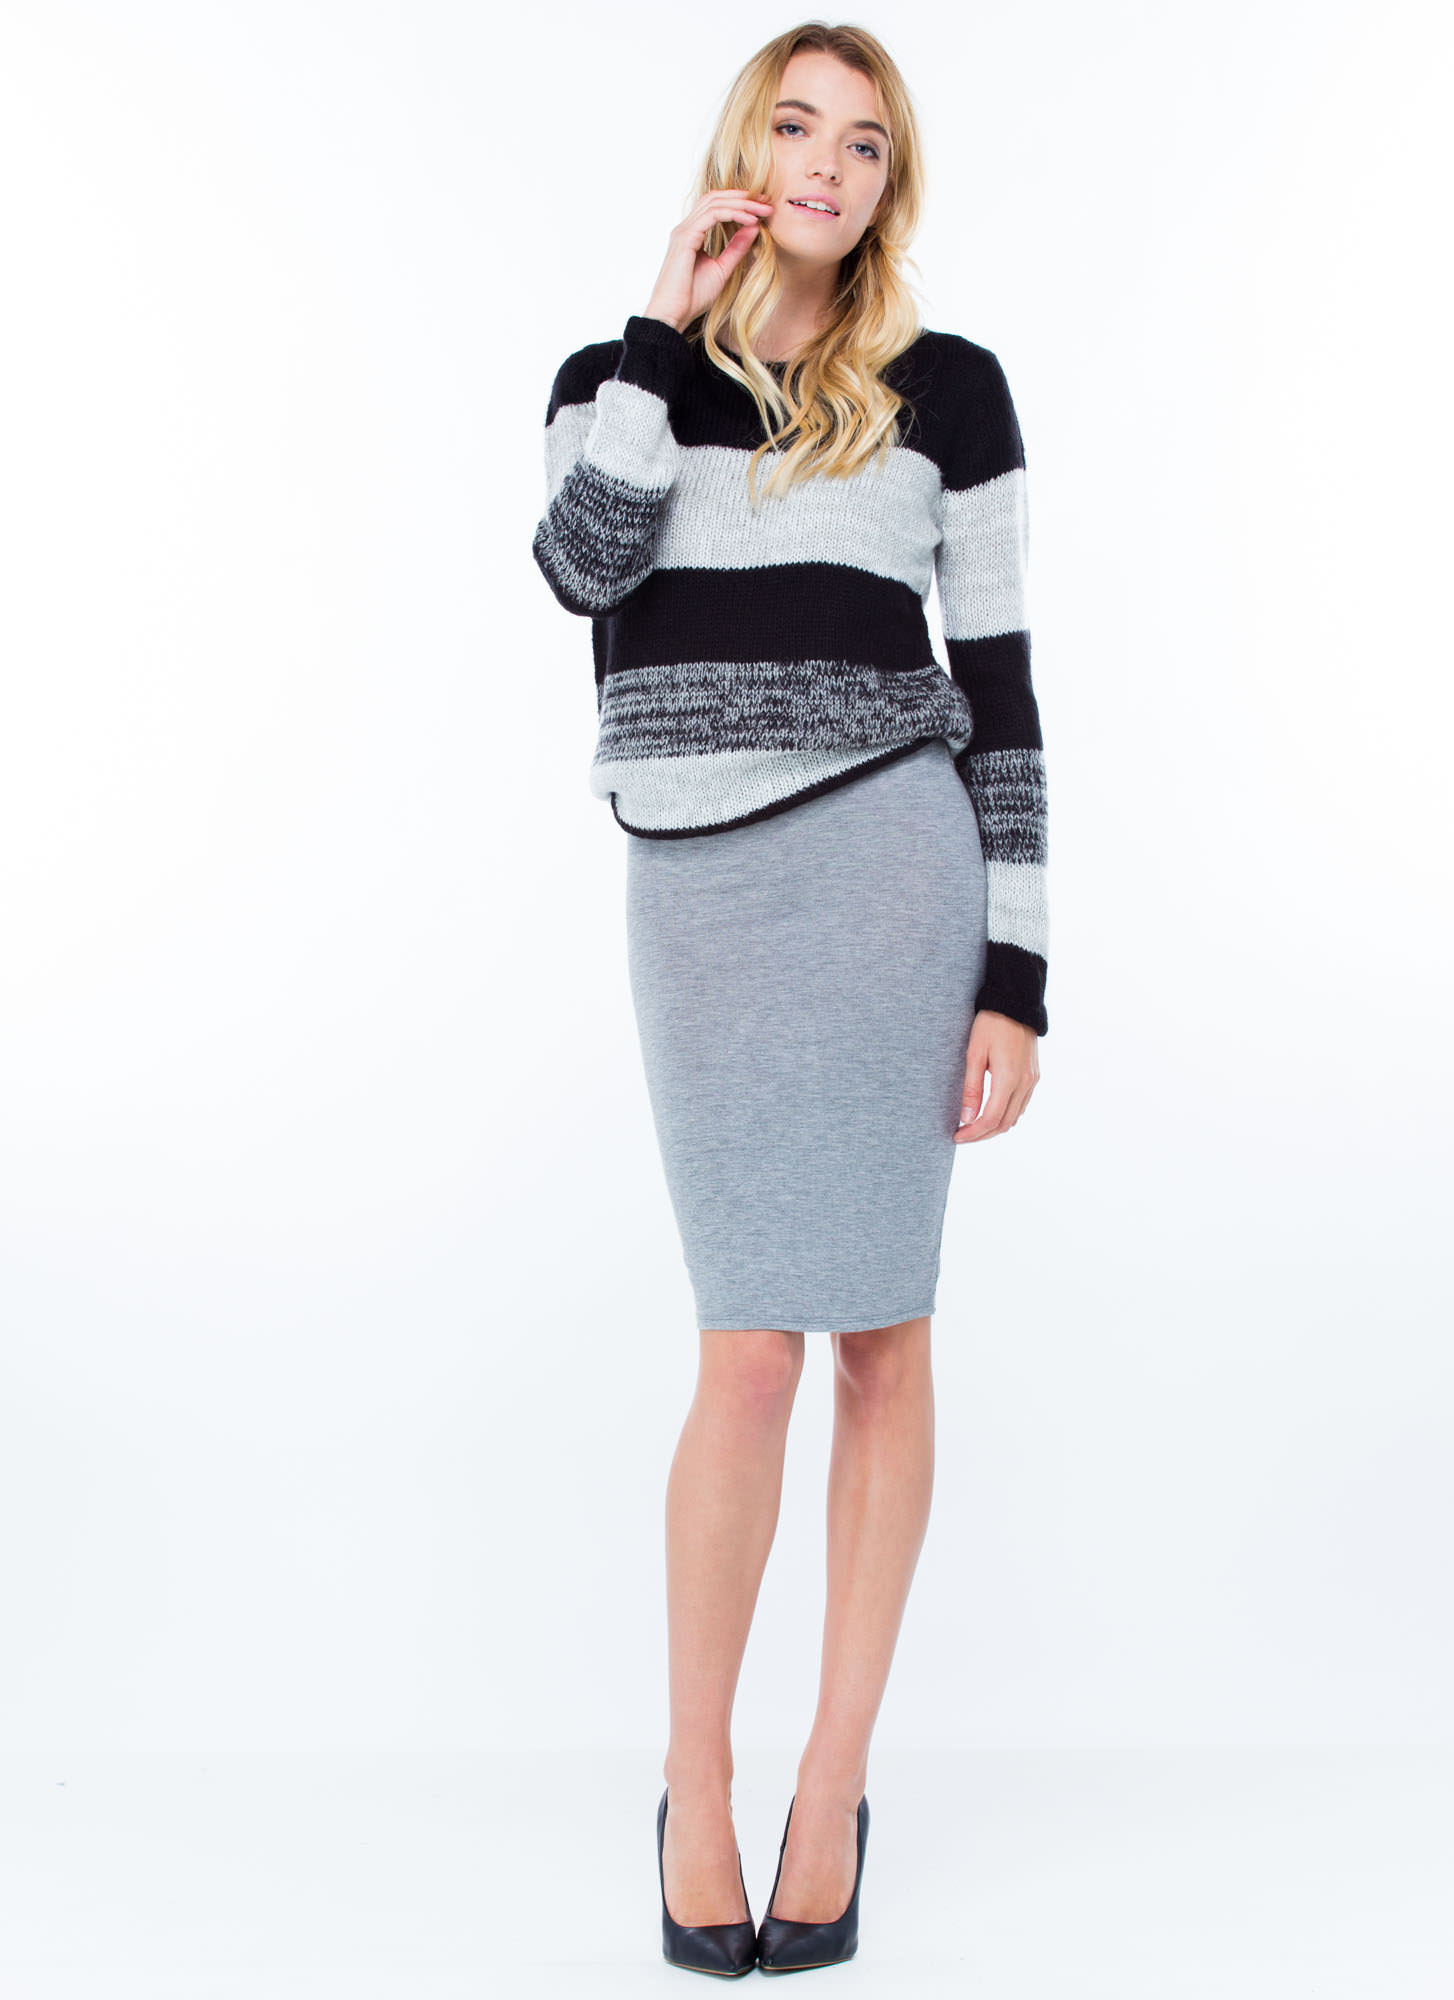 Anywhere Anytime Pencil Skirt HGREY